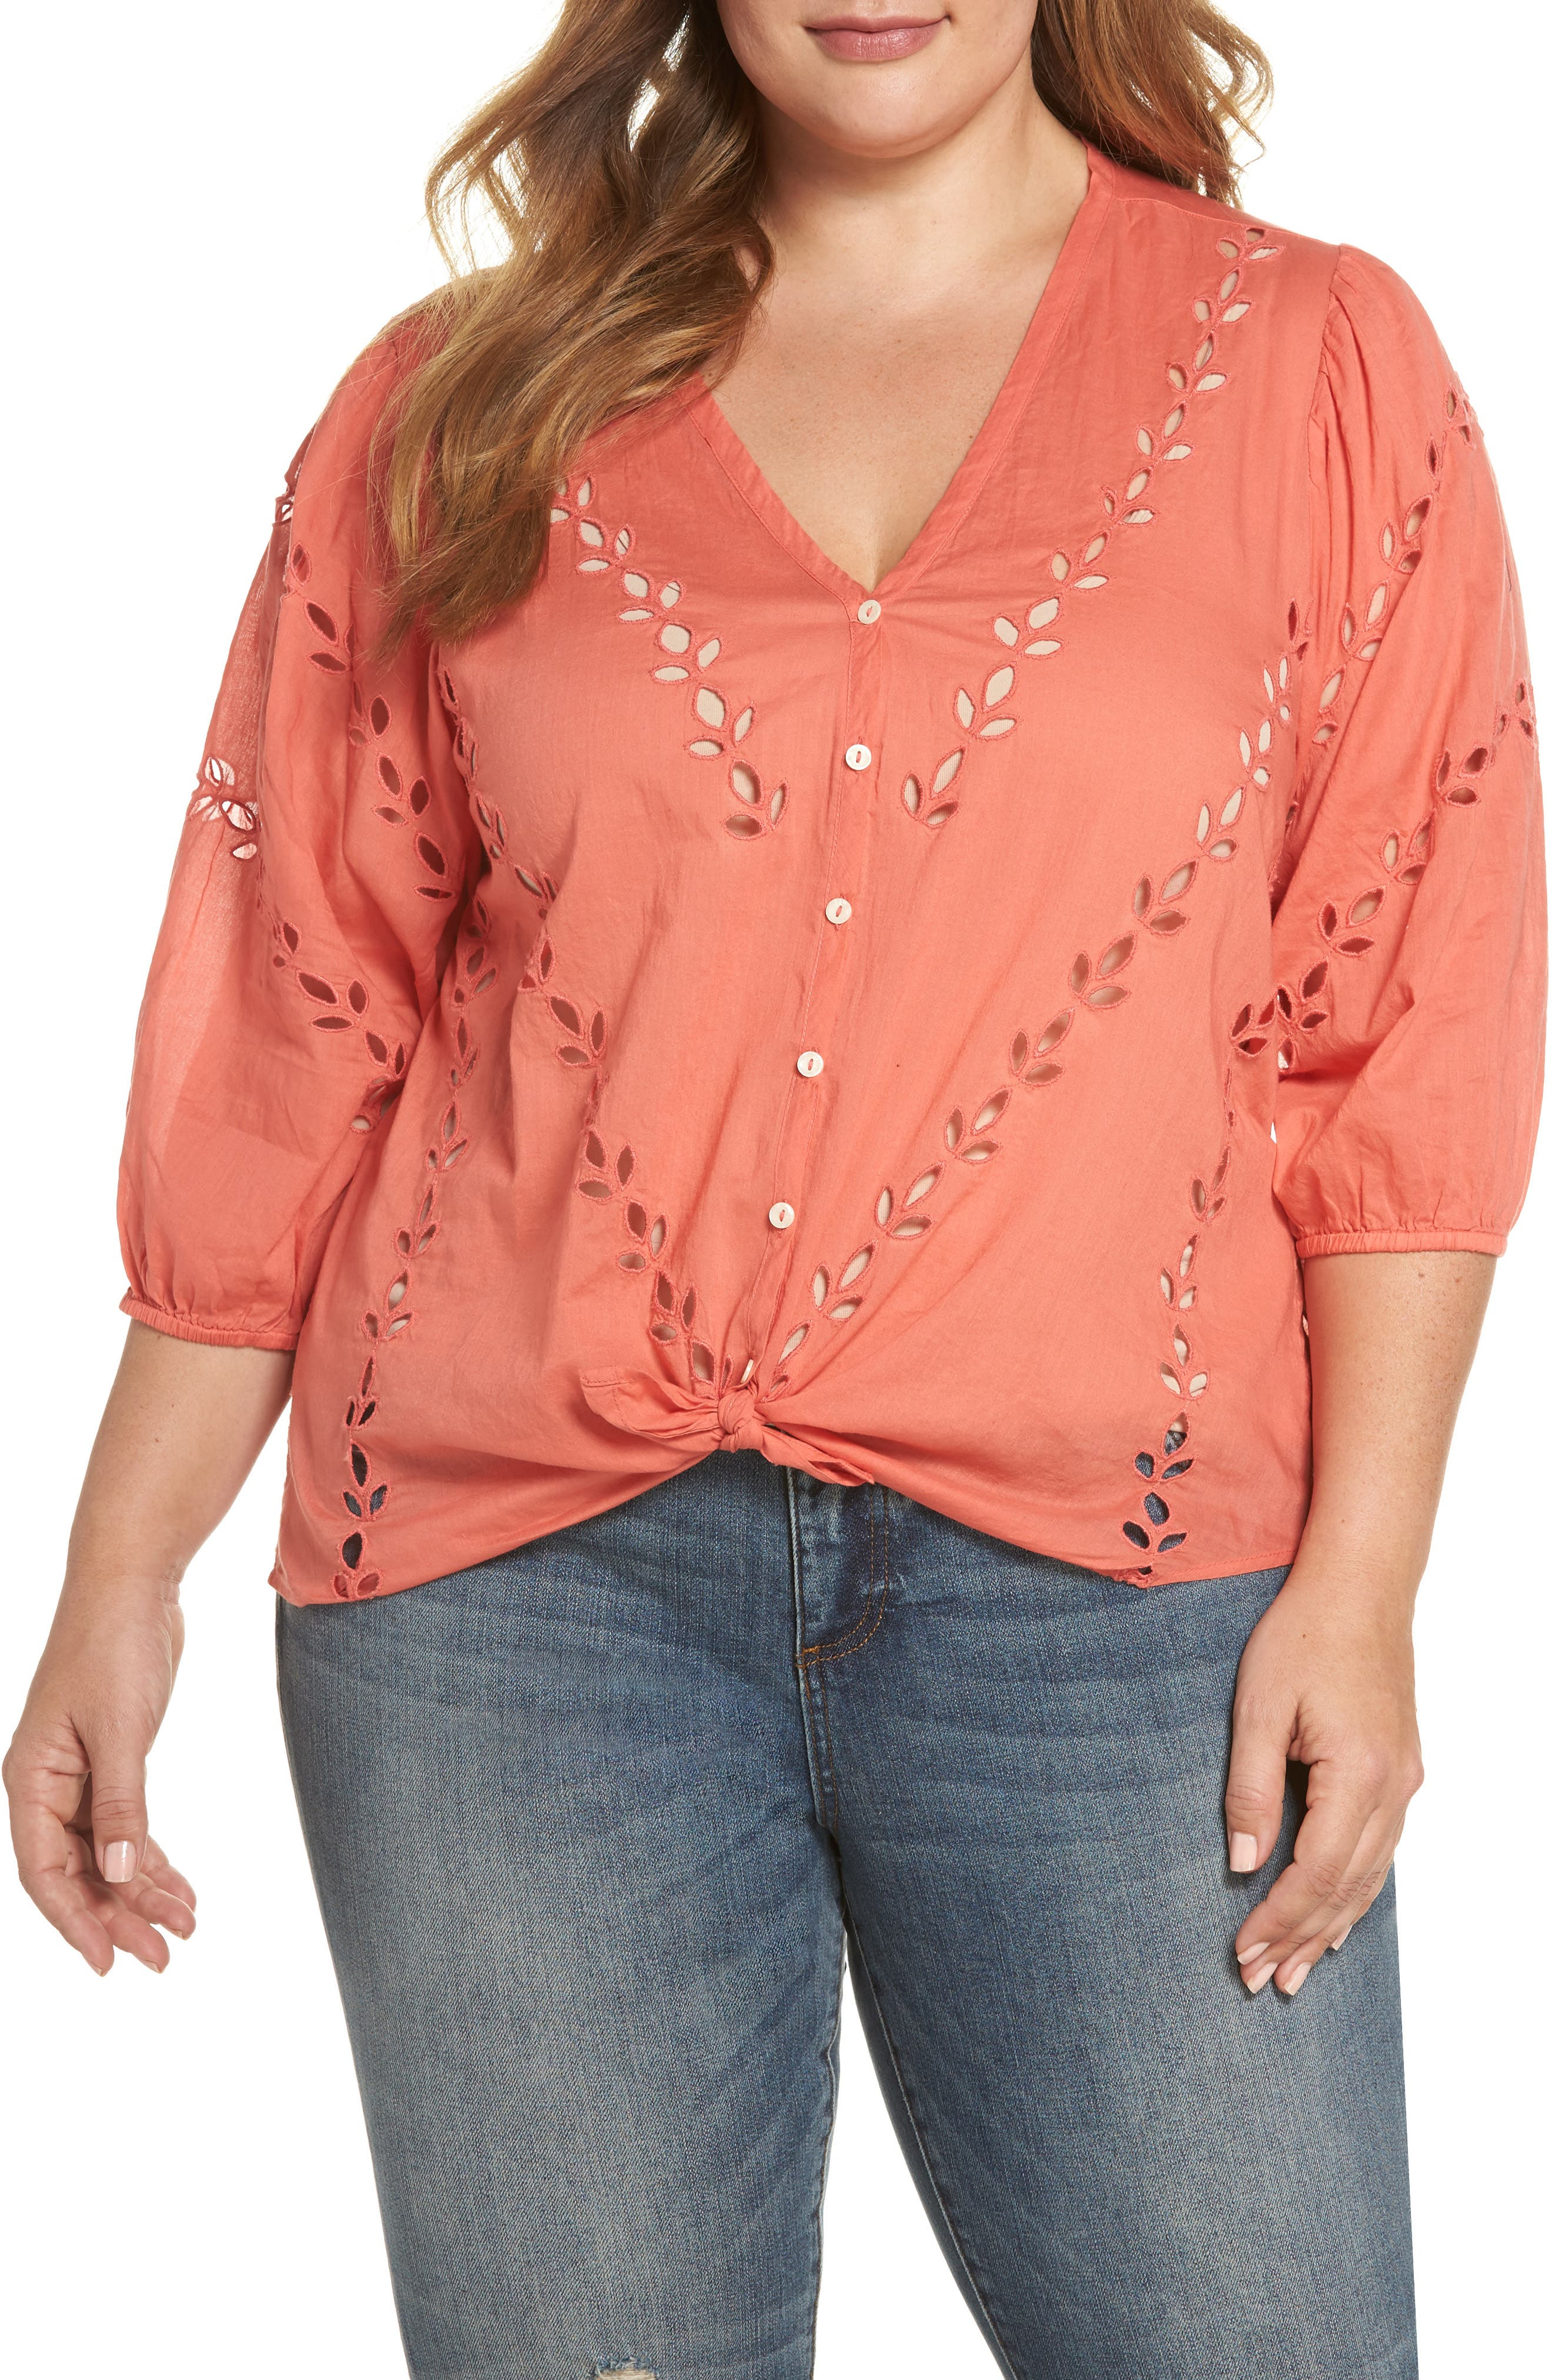 Eyelet Tie Hem Peasant Blouse,                         Main,                         color, Spiced Coral